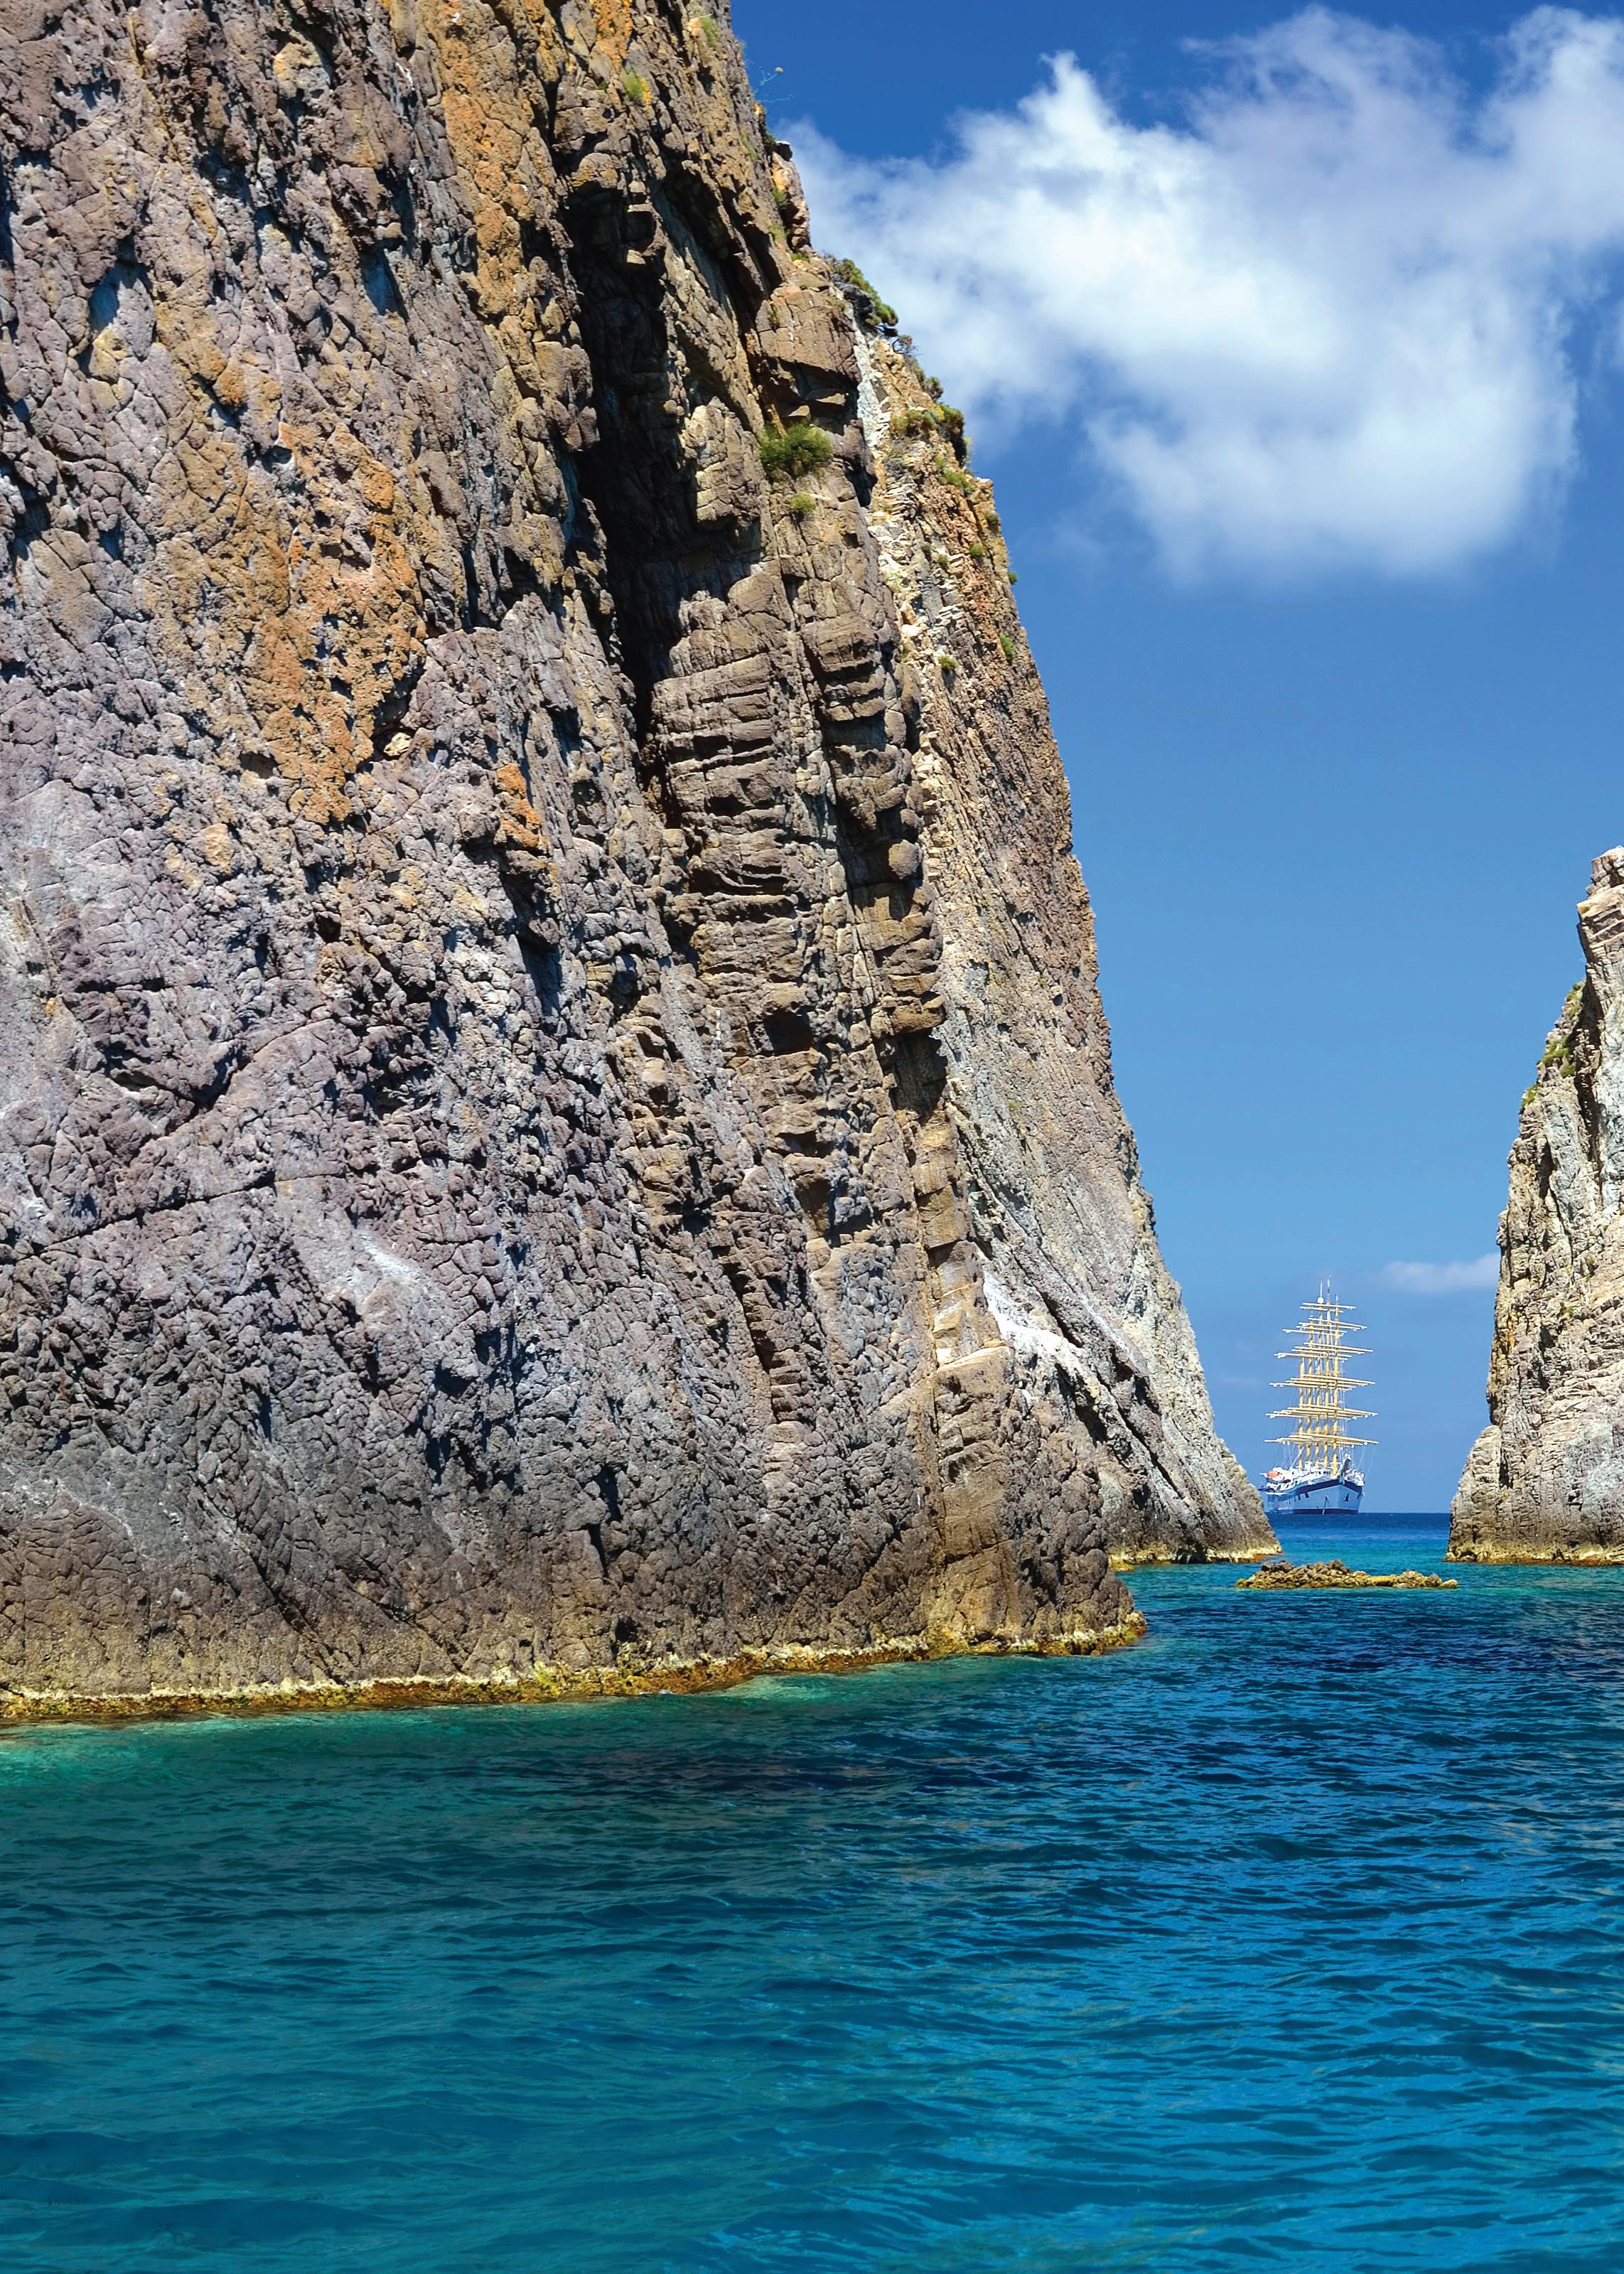 Page 4 of The world's most spectacular tall ships